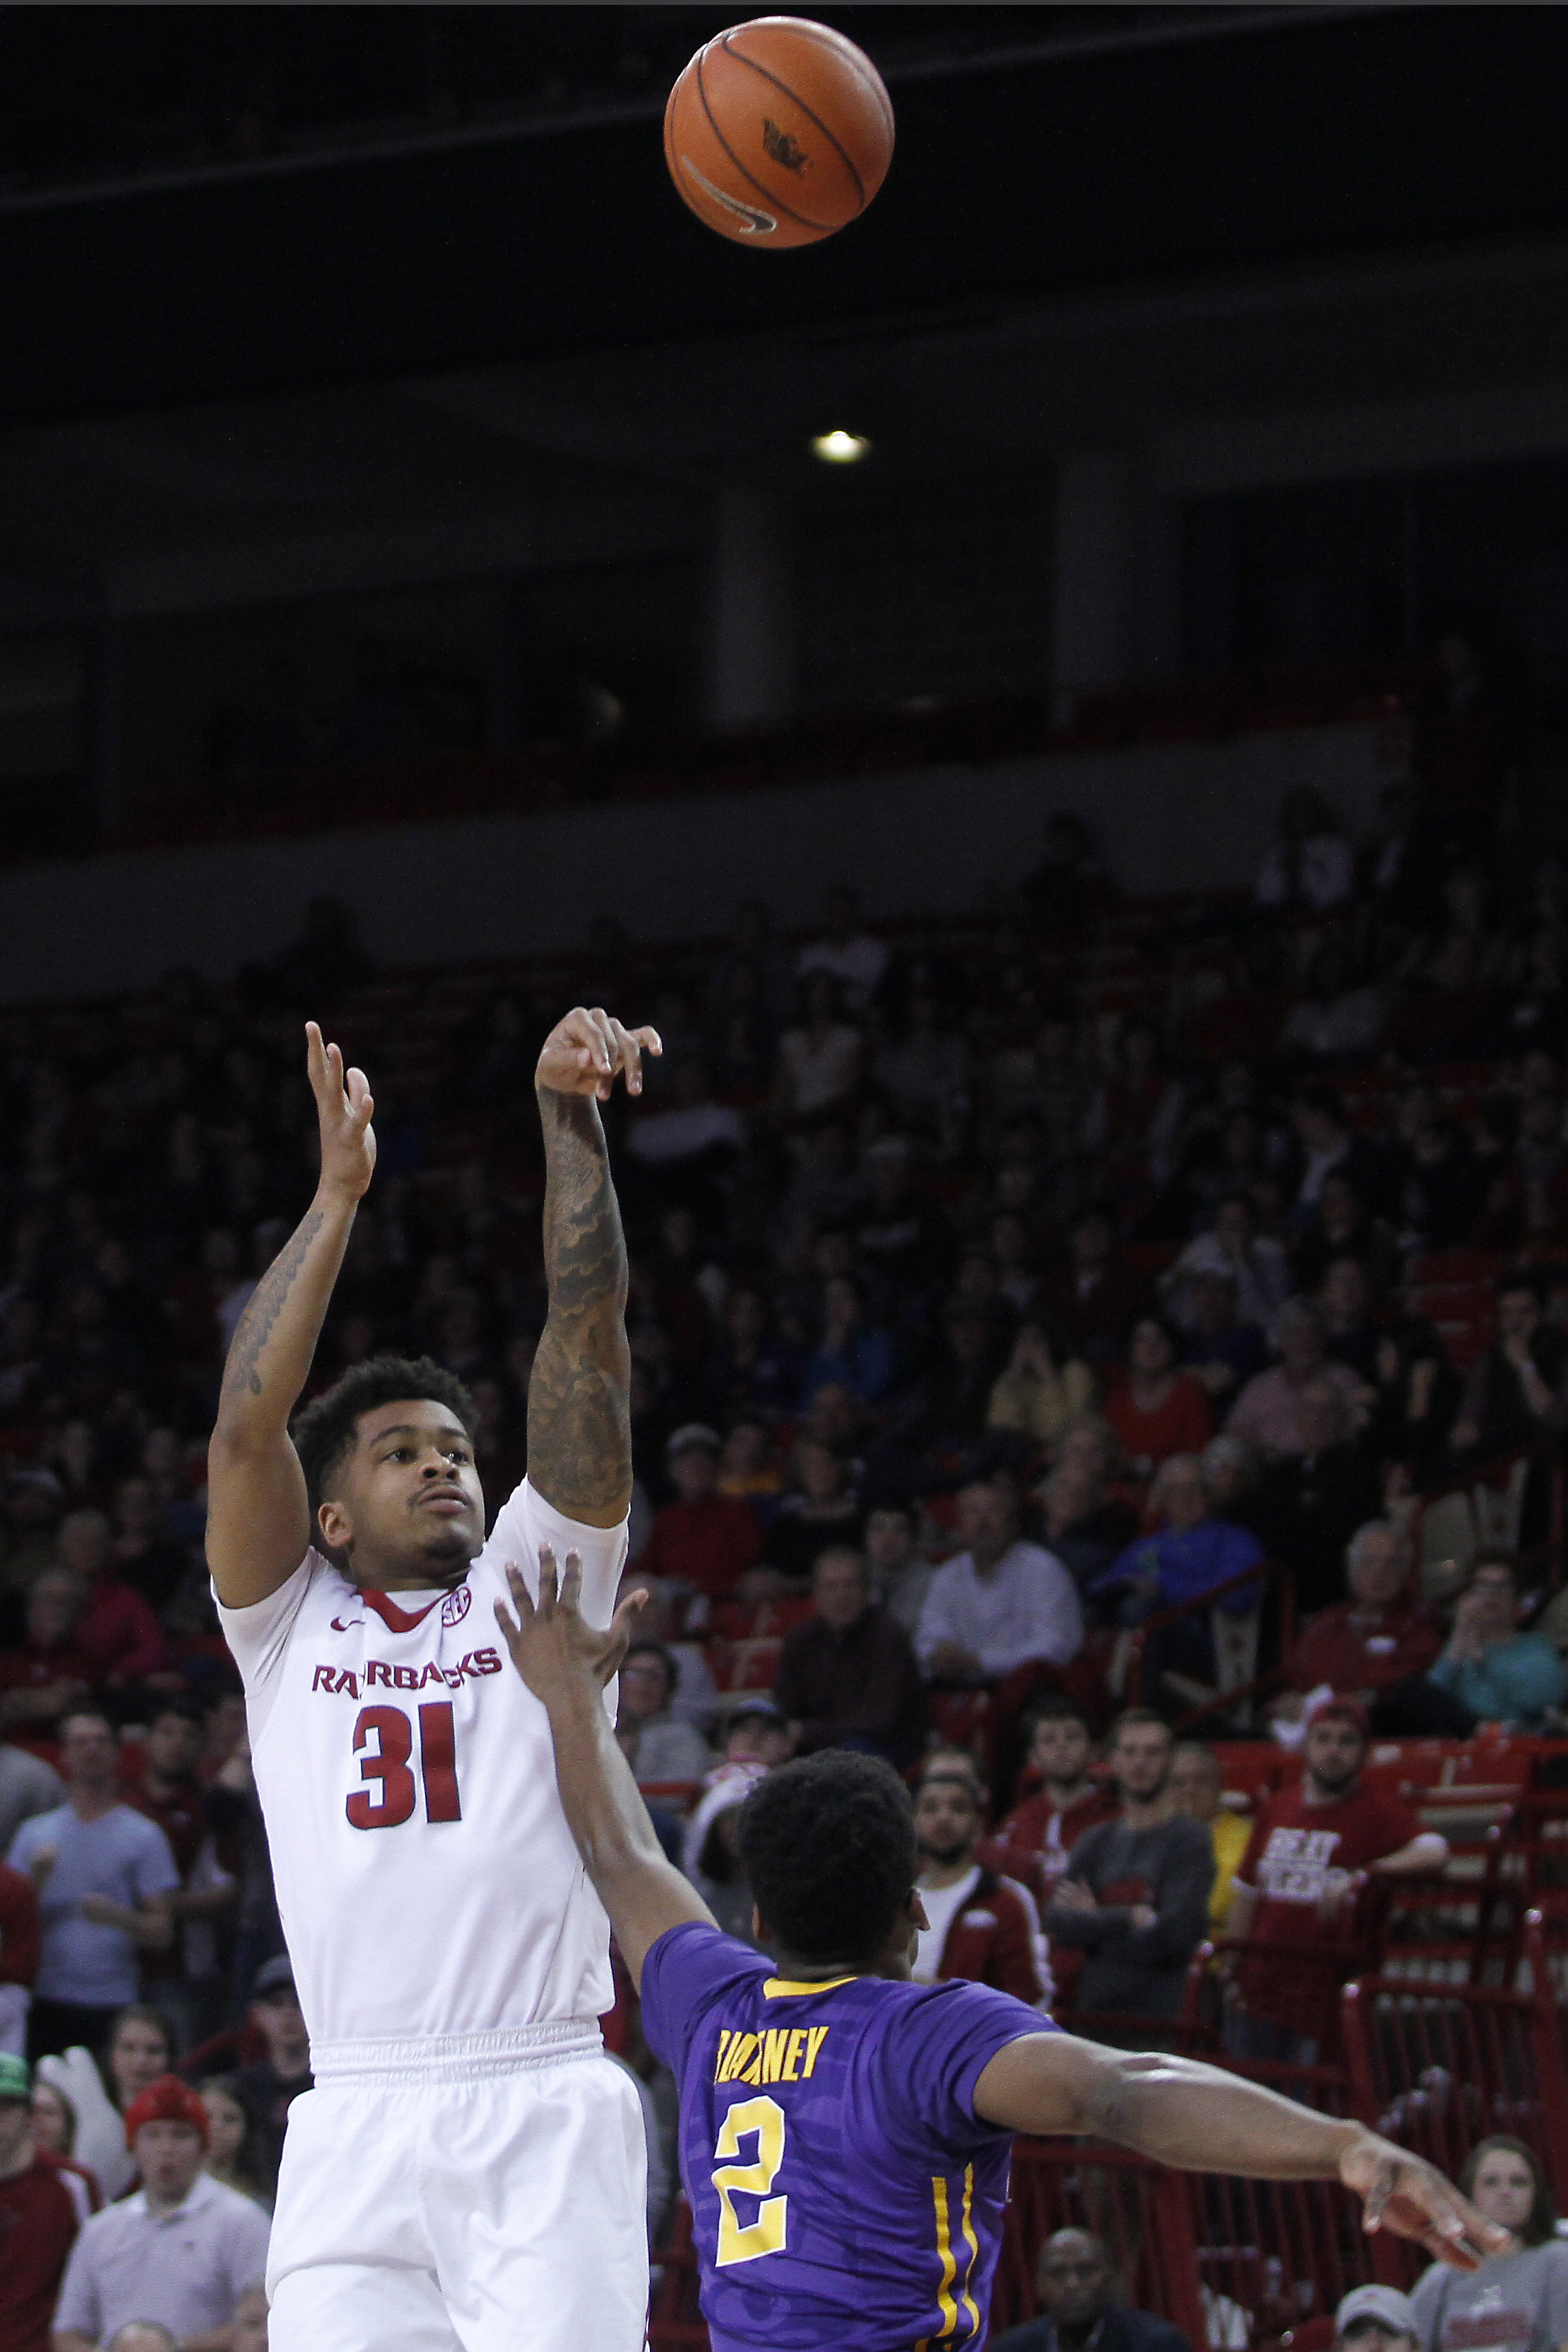 LSU's Antonio Blakeney (2) tries to block a 3-point shot by Arkansas' Anton Beard (31) during the first half of an NCAA college basketball game Tuesday, Feb. 23, 2016, in Fayetteville, Ark. (AP Photo/Samantha Baker)